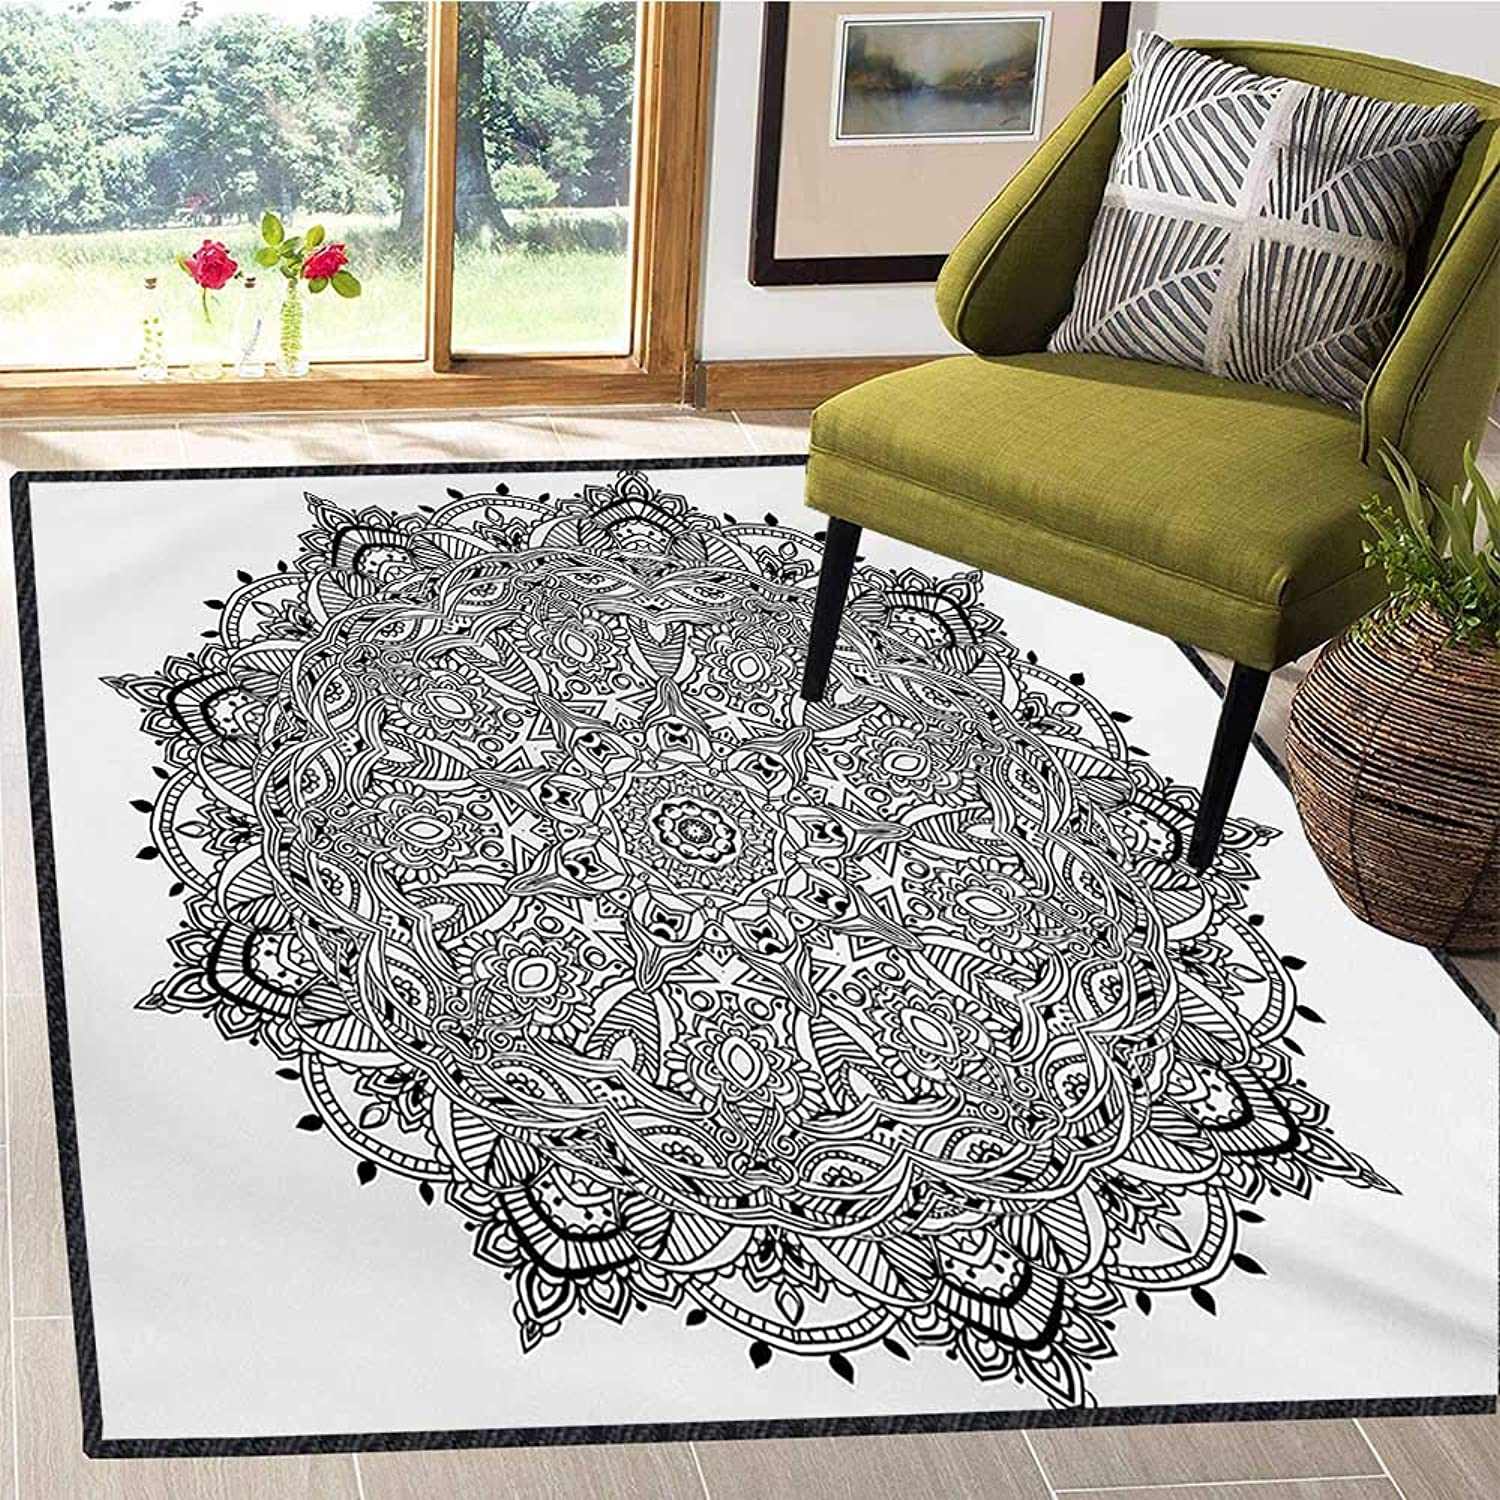 Mandala, Floor Mat for Kids, Lace Like Macro Round Tribal Motif with Mix Paisley Leaf Elements Kitsch Image, Door Mats for Inside Non Slip Backing 5x6 Ft Black White